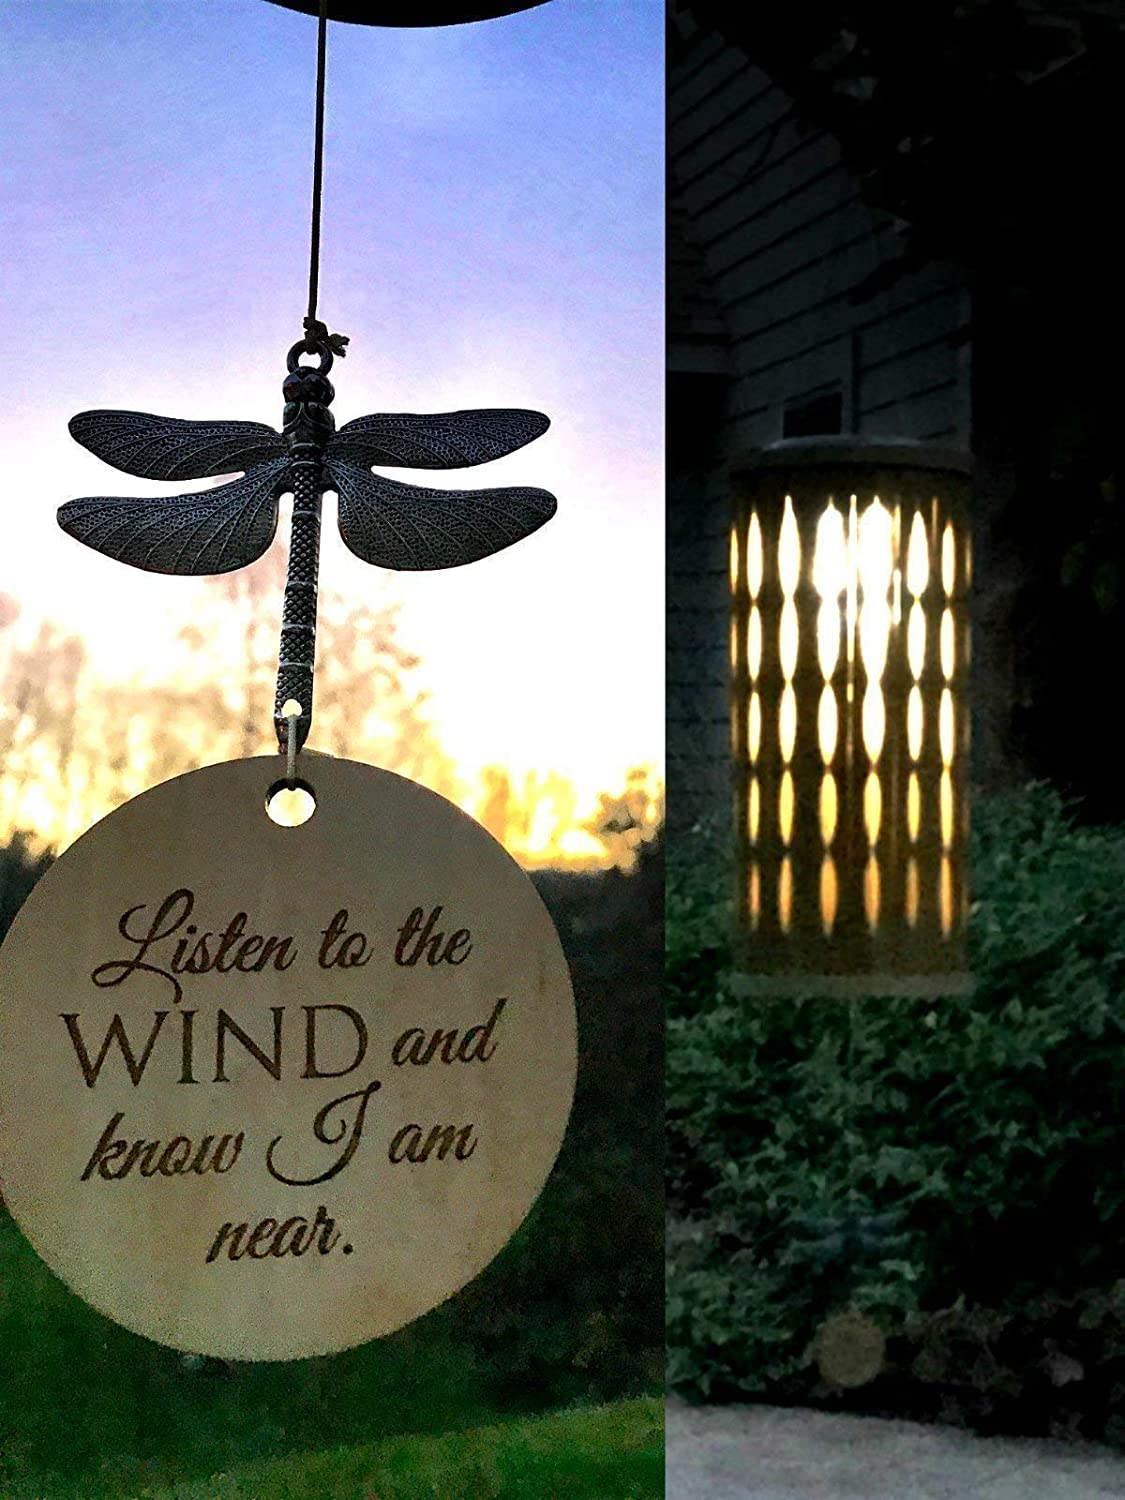 SALE 26 inch Customized Memorial Wind Chime SOLAR in Memory of Adult or Child Eternal light Memorial Heaven day remembering mom death of mother or father Bamboo Woodstock Chime